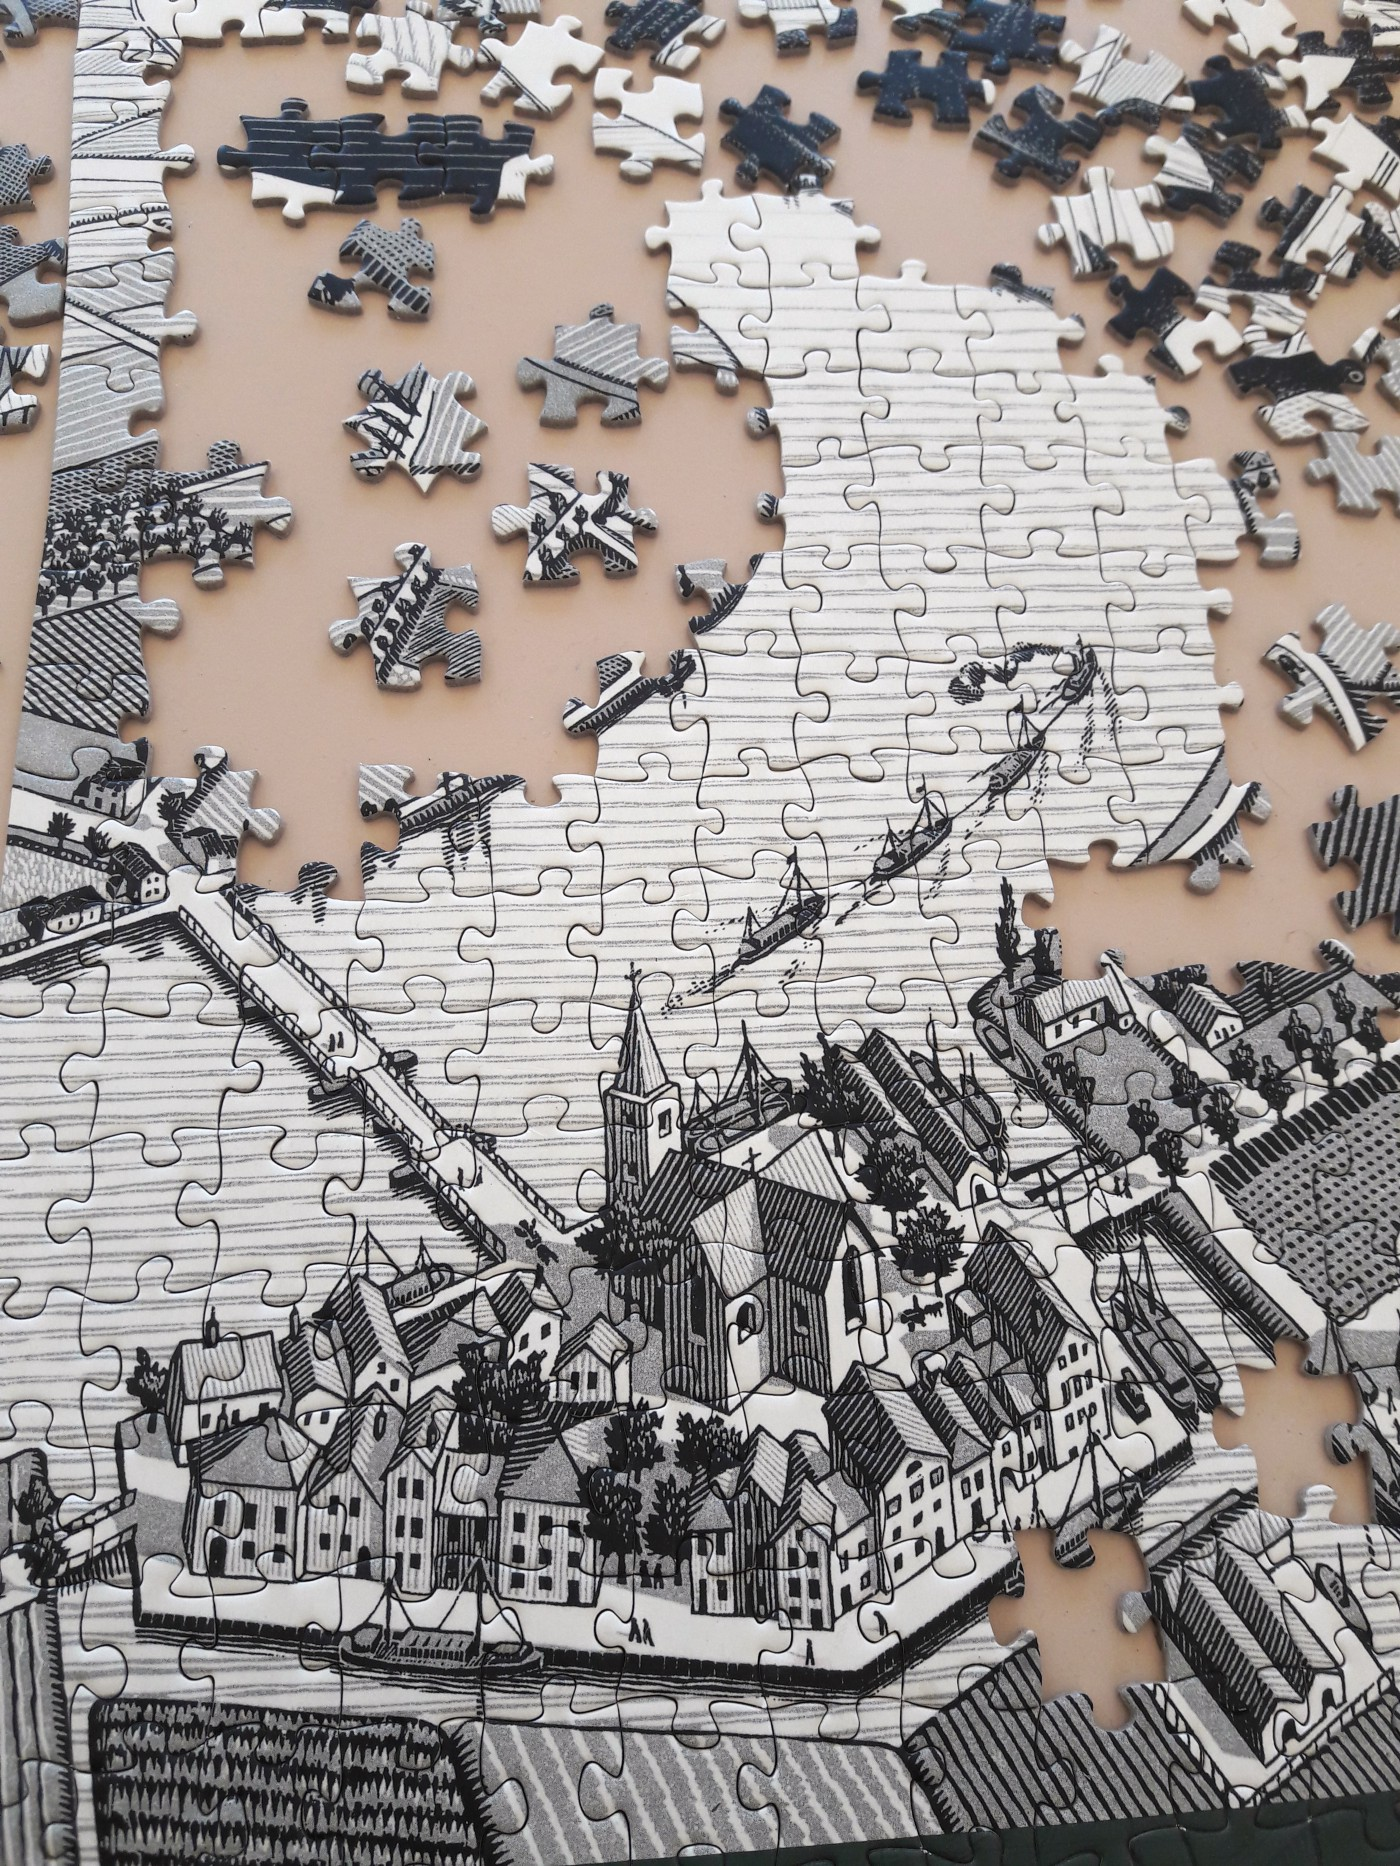 Partially completed puzzle with remaining puzzle pieces scattered around it. Black and white.